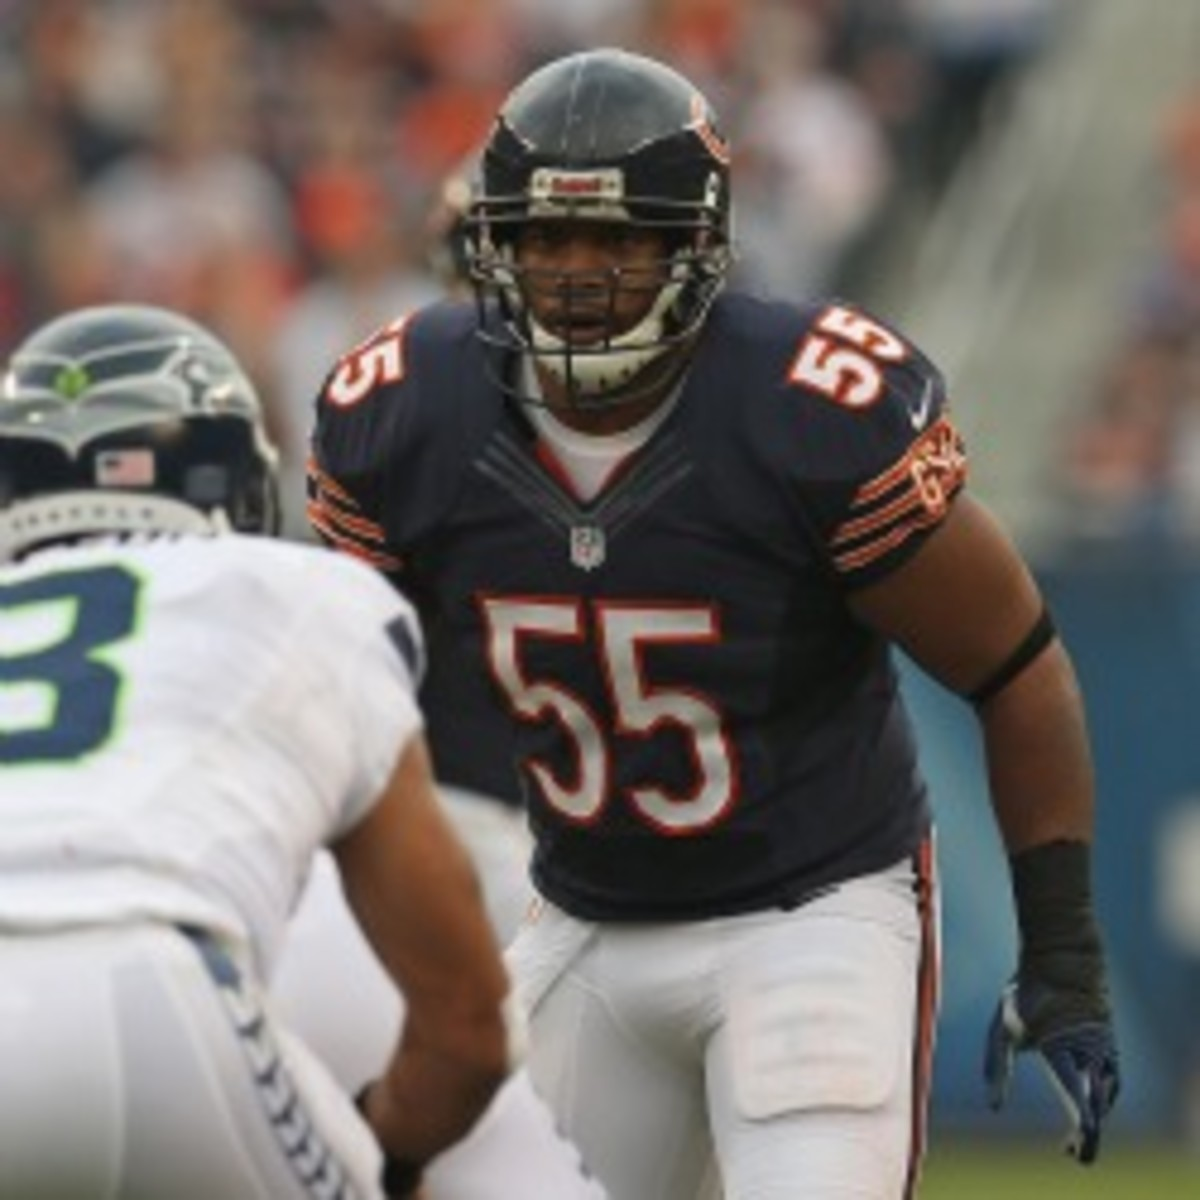 Bears linebacker Lance Briggs says Packers tight end Jermichael Finley should be quiet and called him an idiot. (Jonathan Daniel/Getty Images)